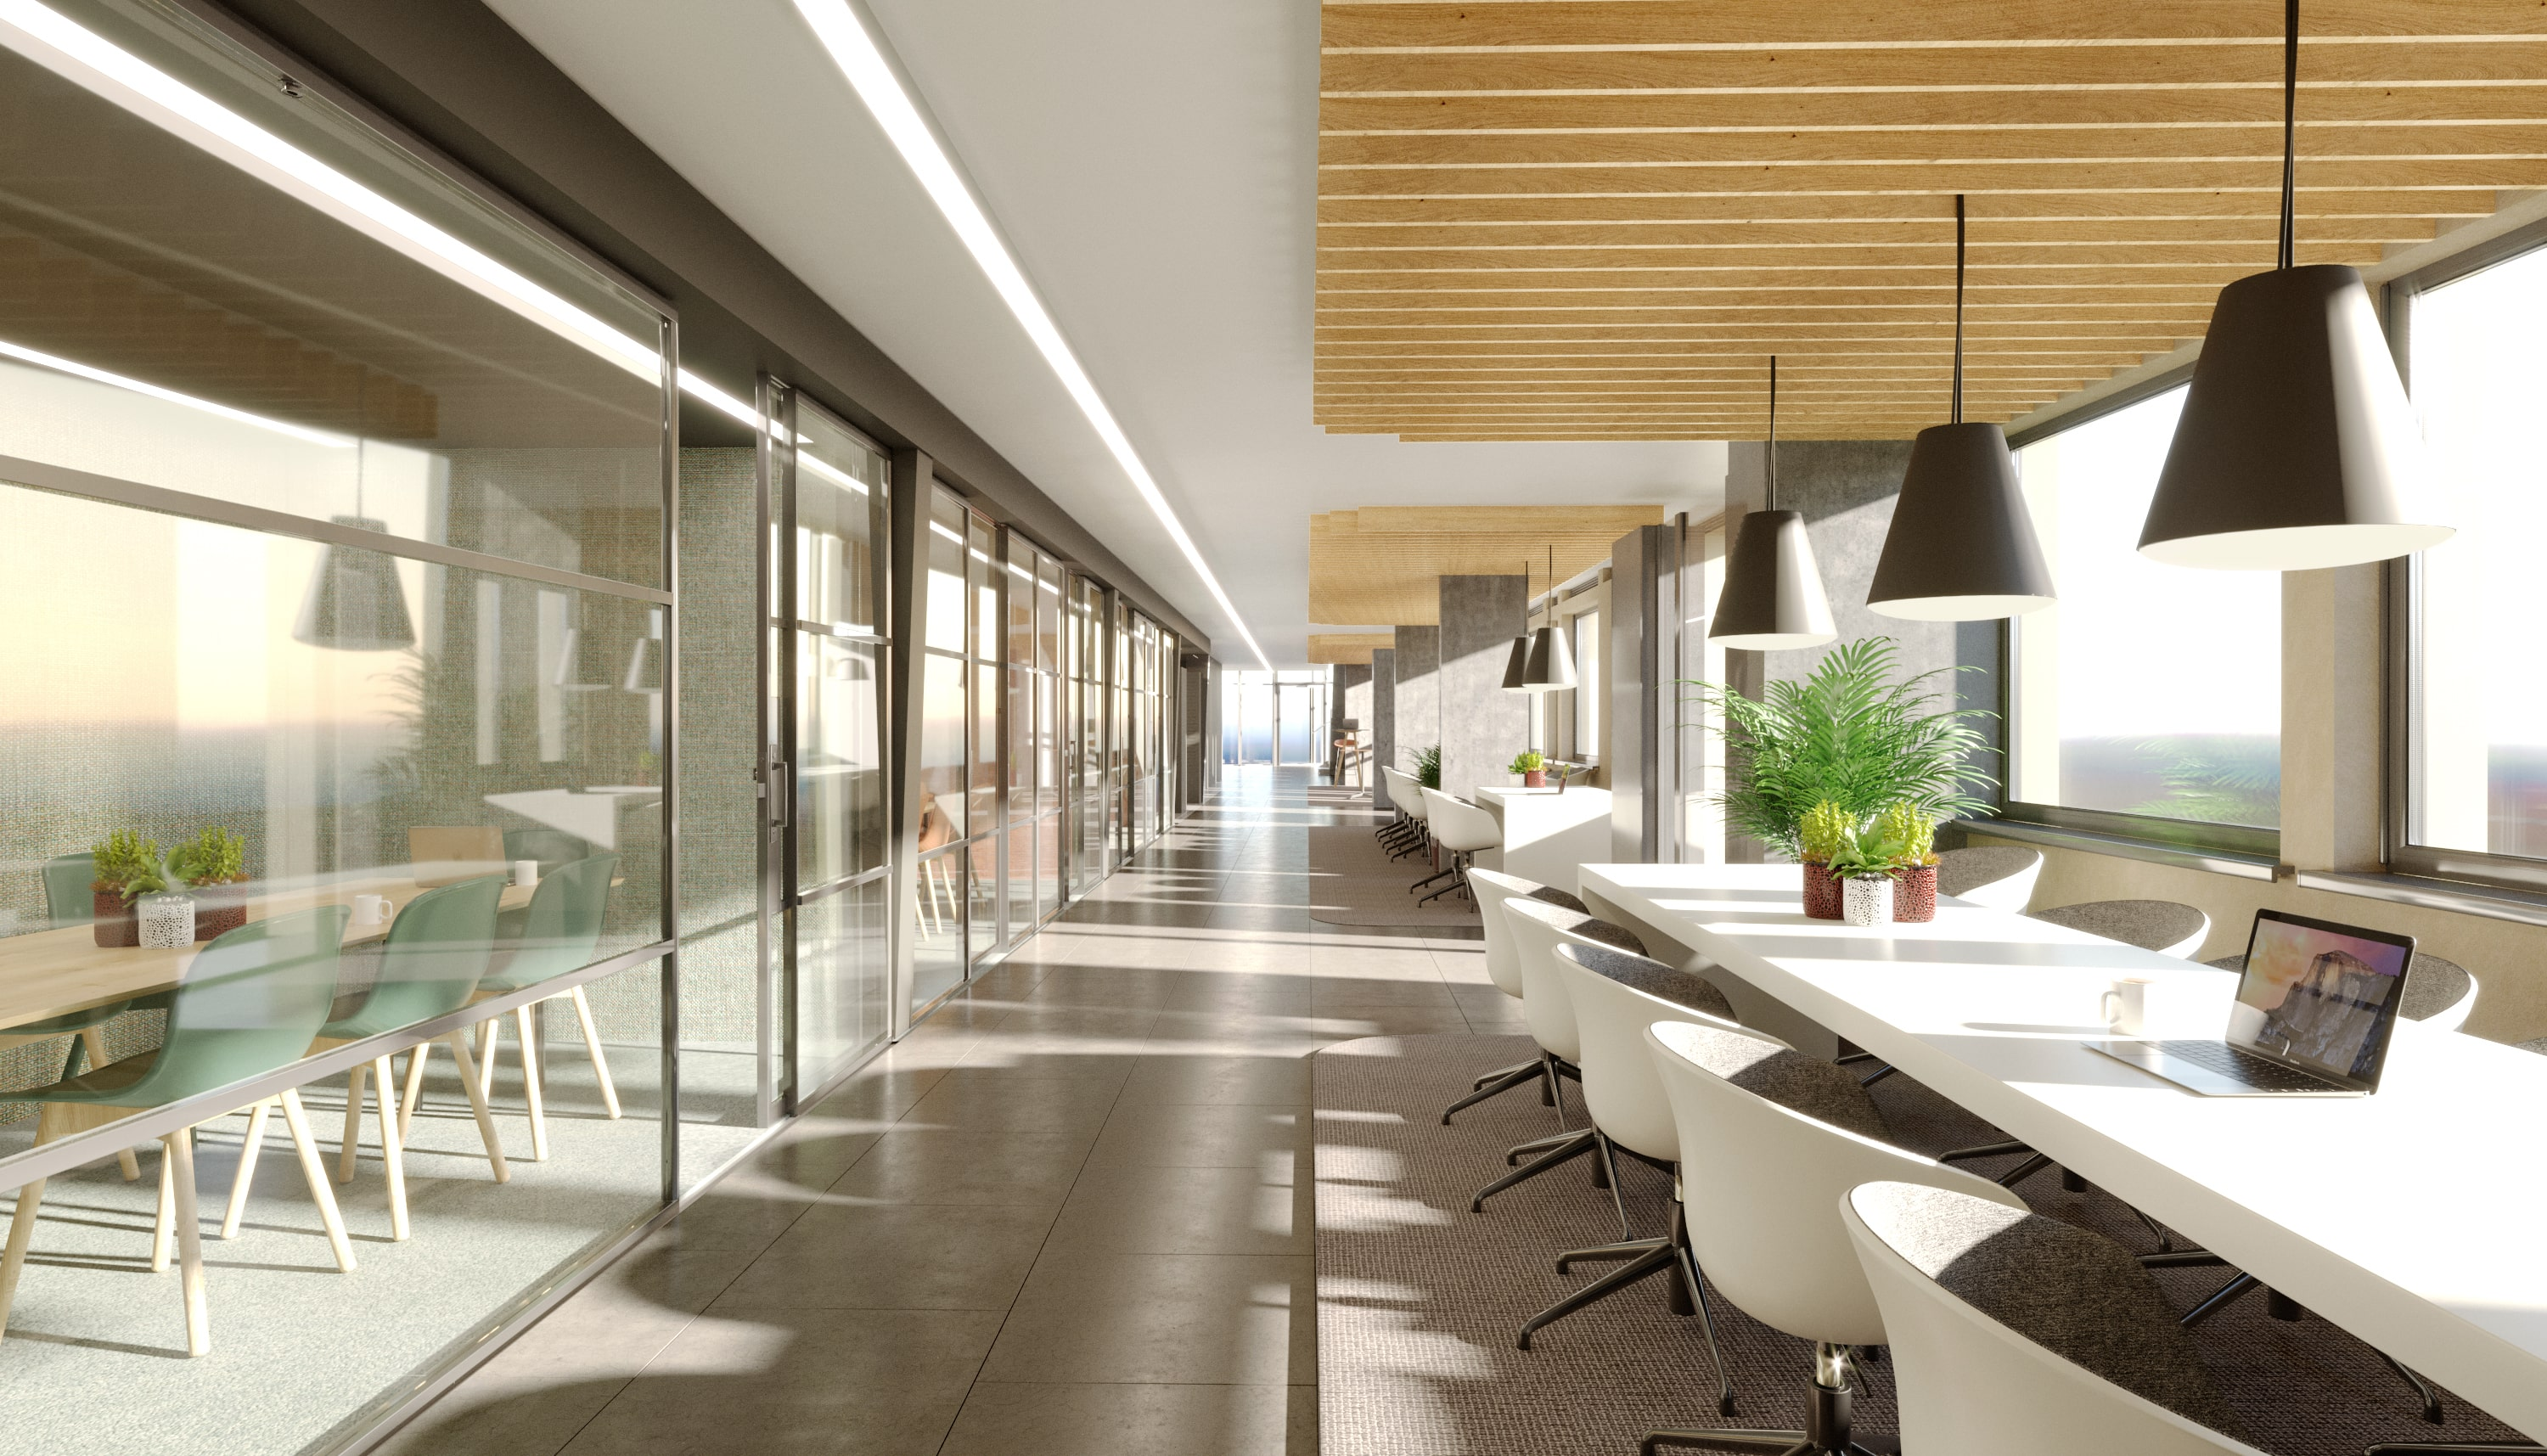 interior visualisation - meeting rooms cgi 3-min